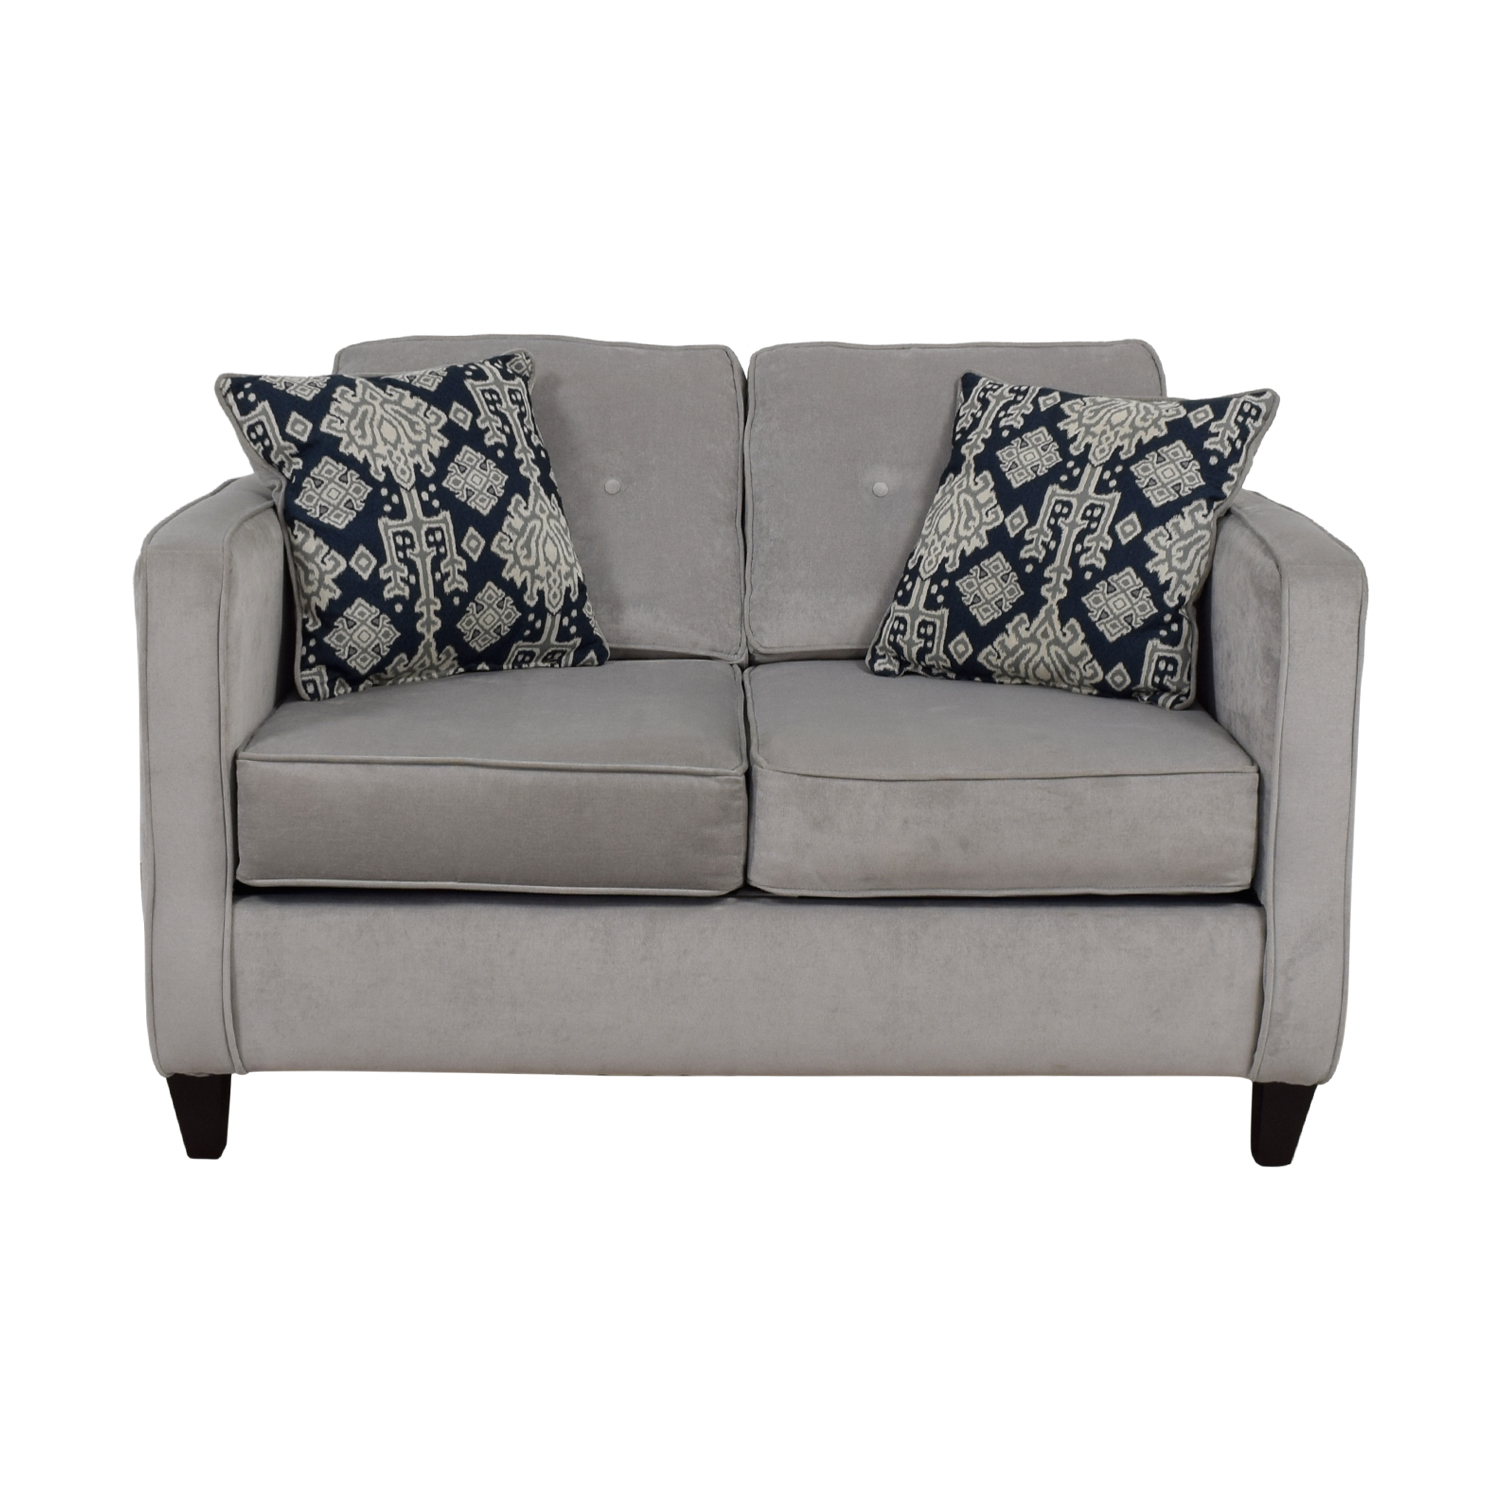 Mercury Row Mercury Row Serta Grey Upholstery Cypress Loveseat On Sale ...